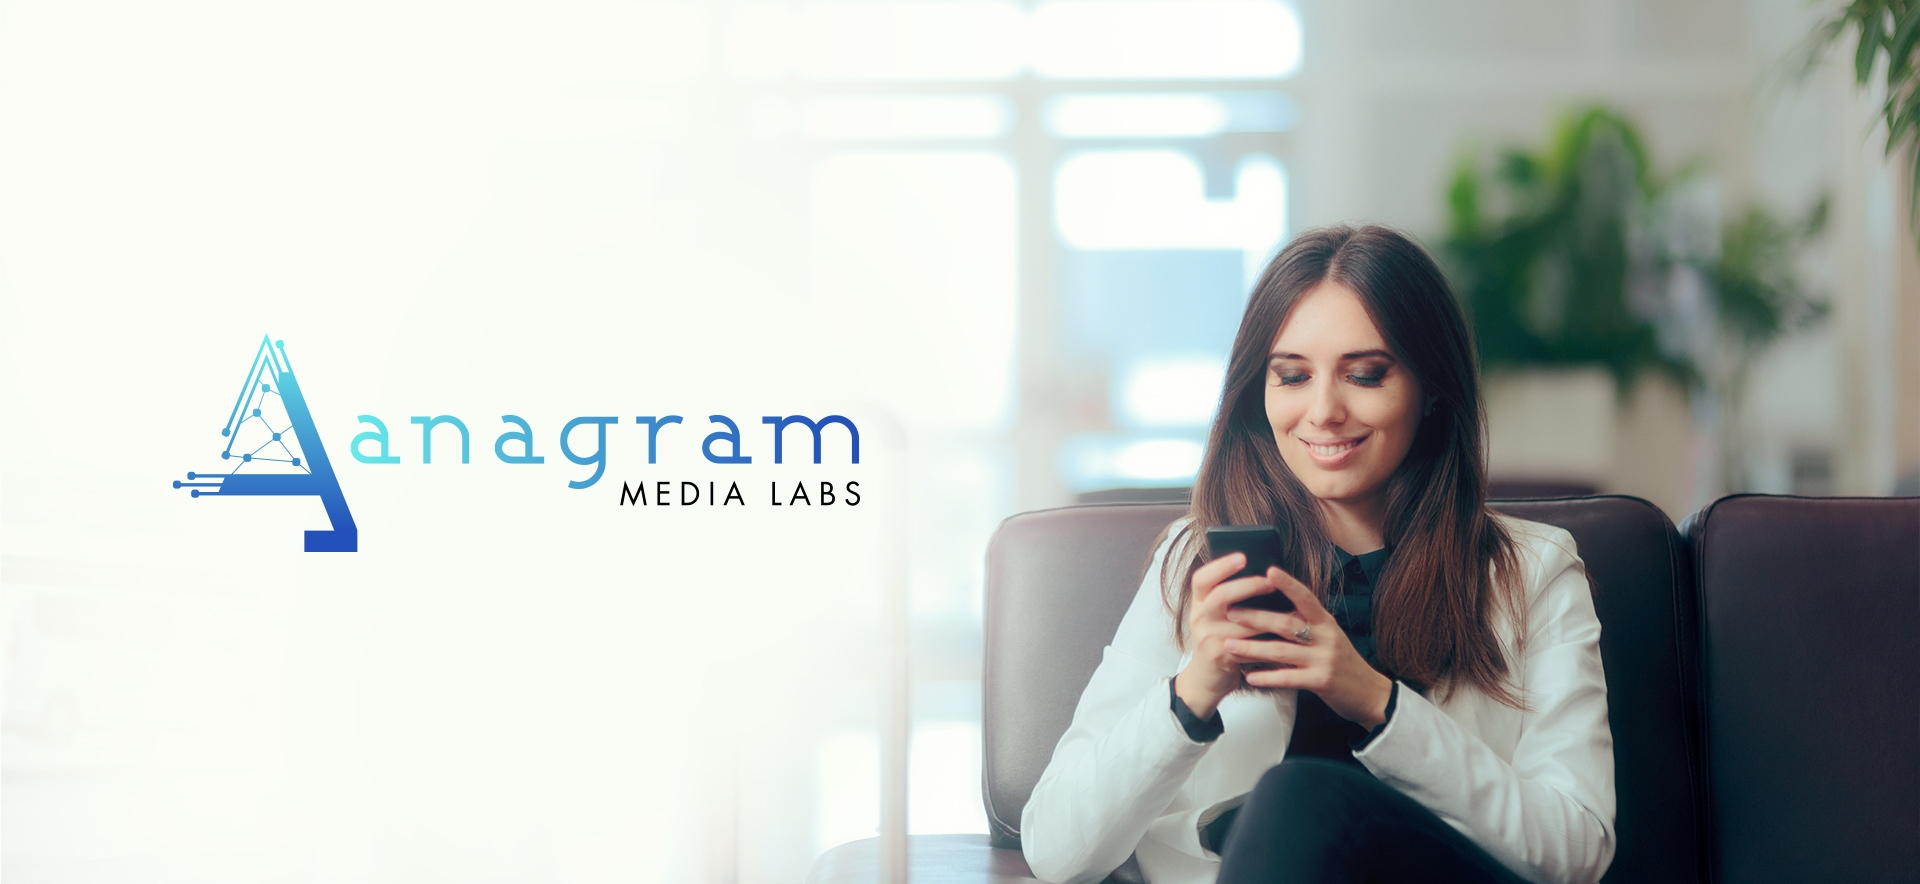 Performance Marketing Agency (@anagrammedia) Cover Image